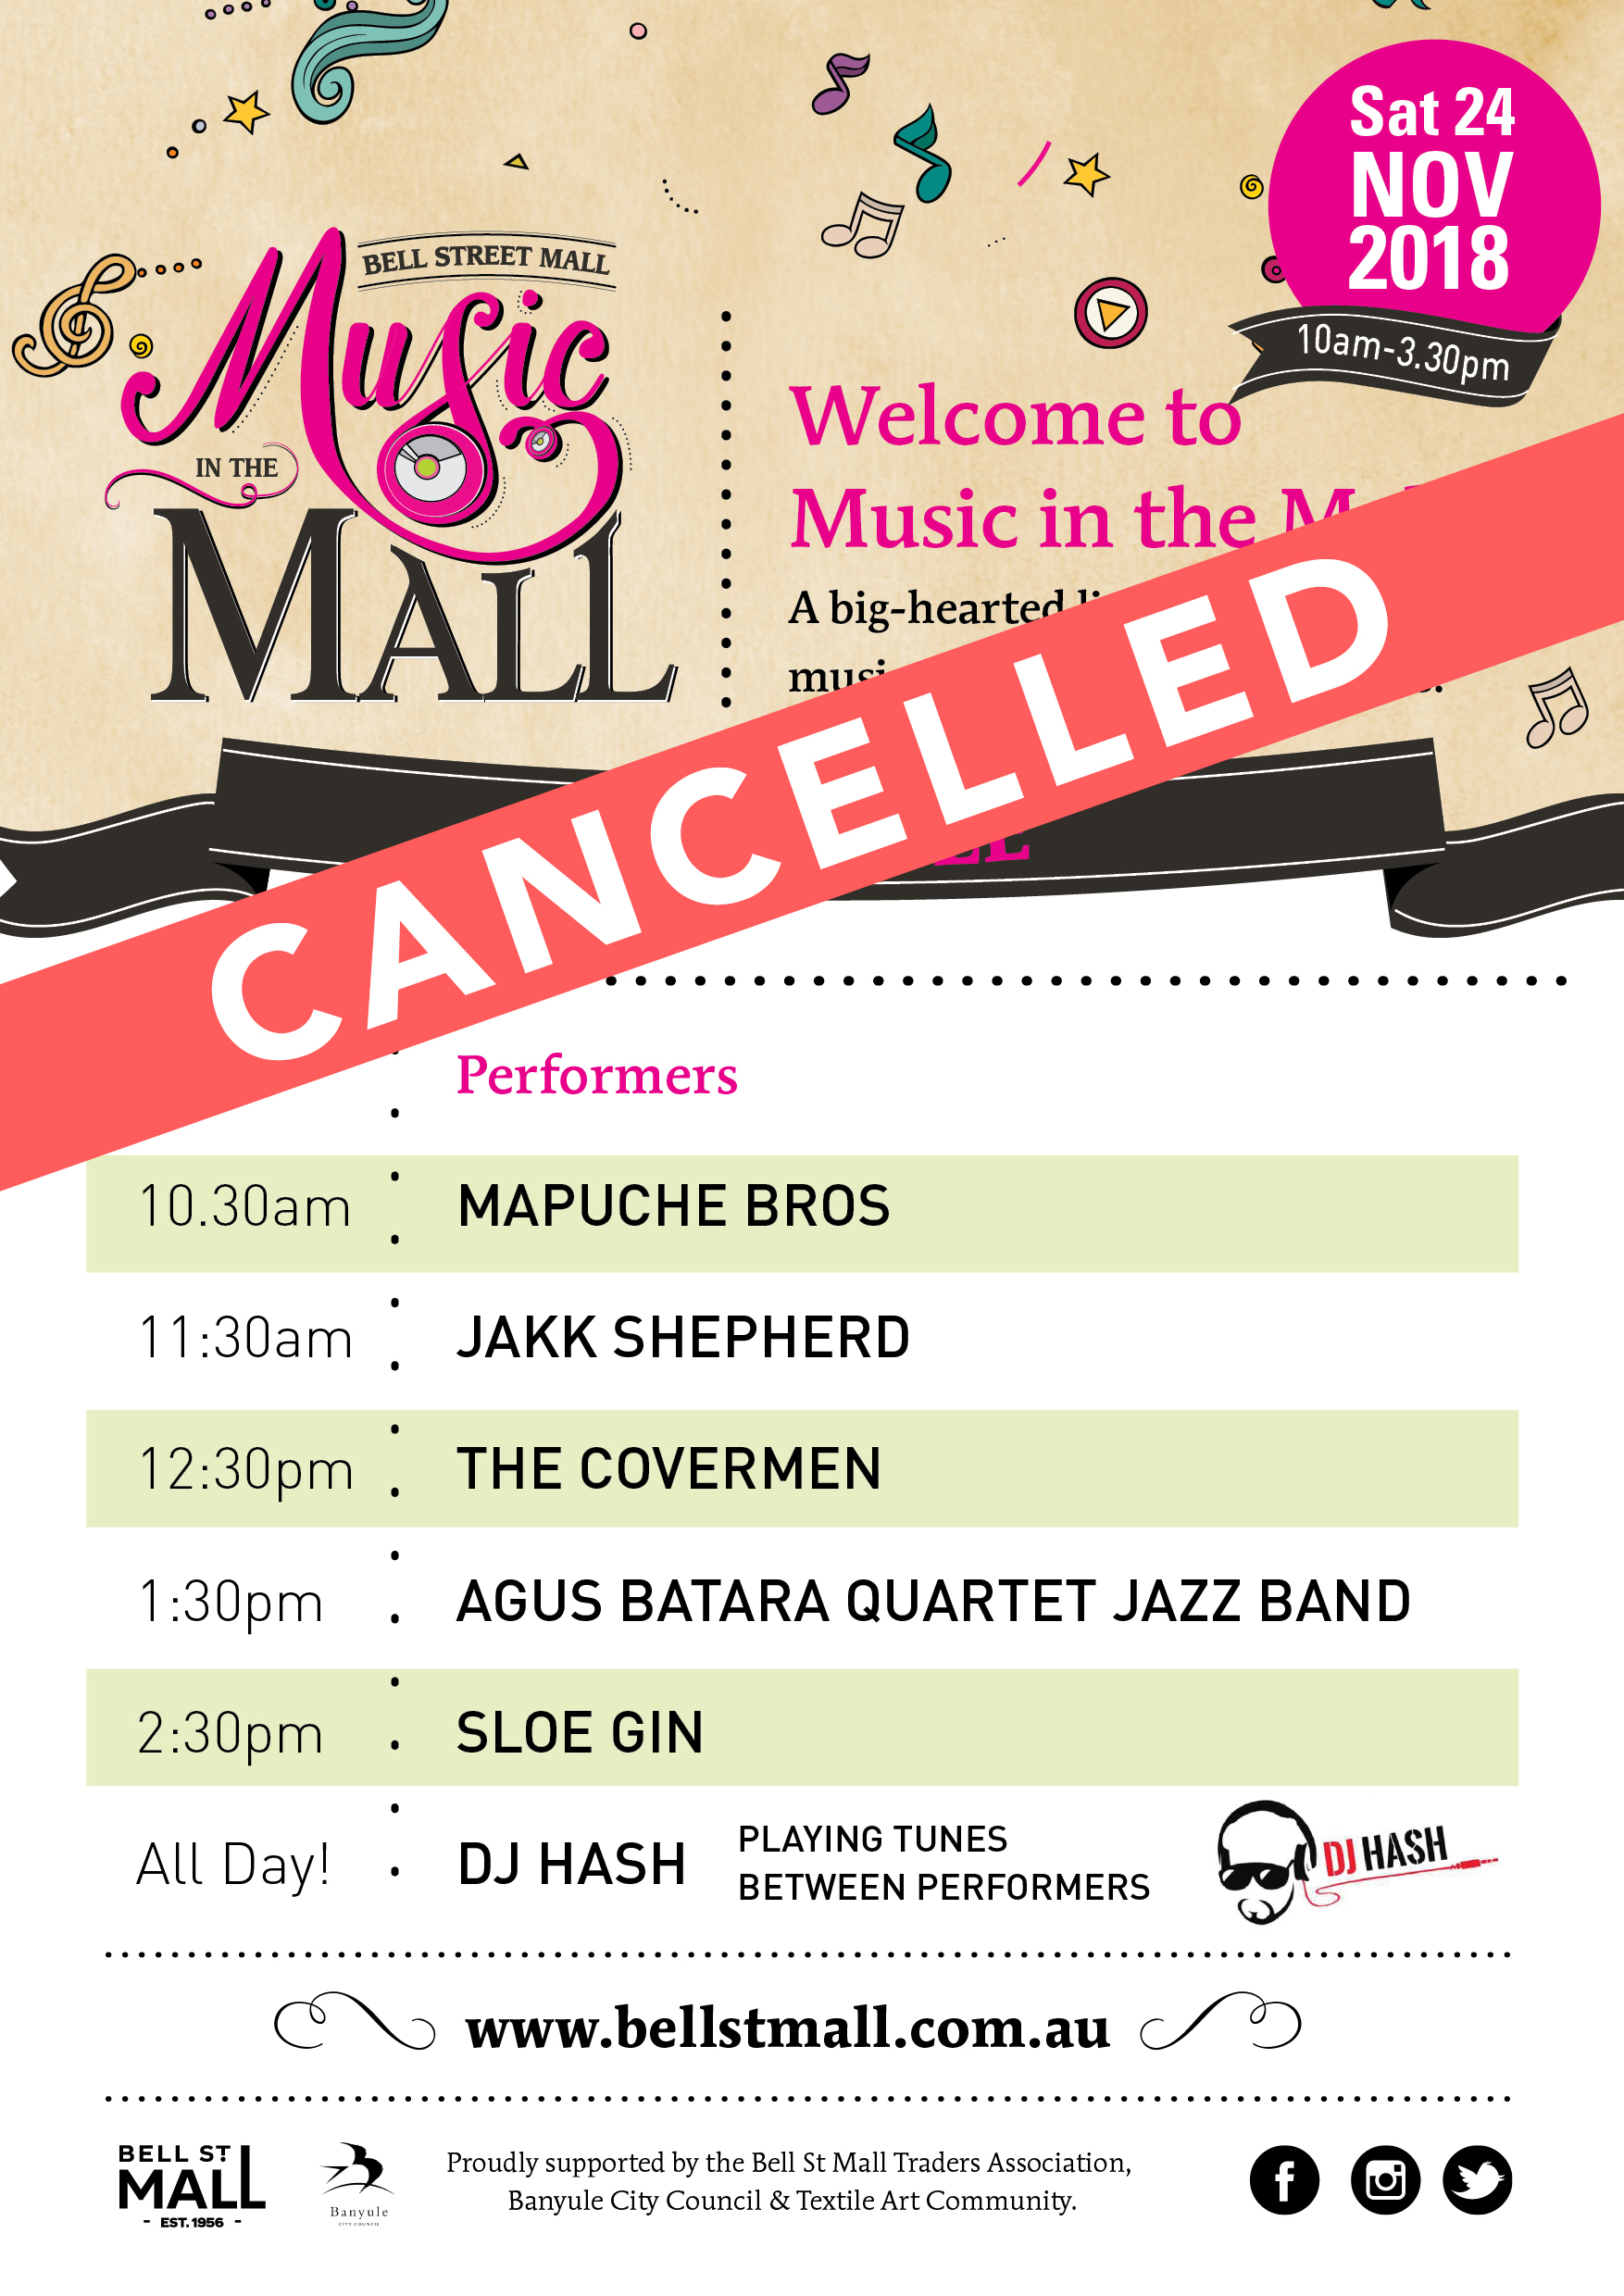 Music in the Mall, Music Festival